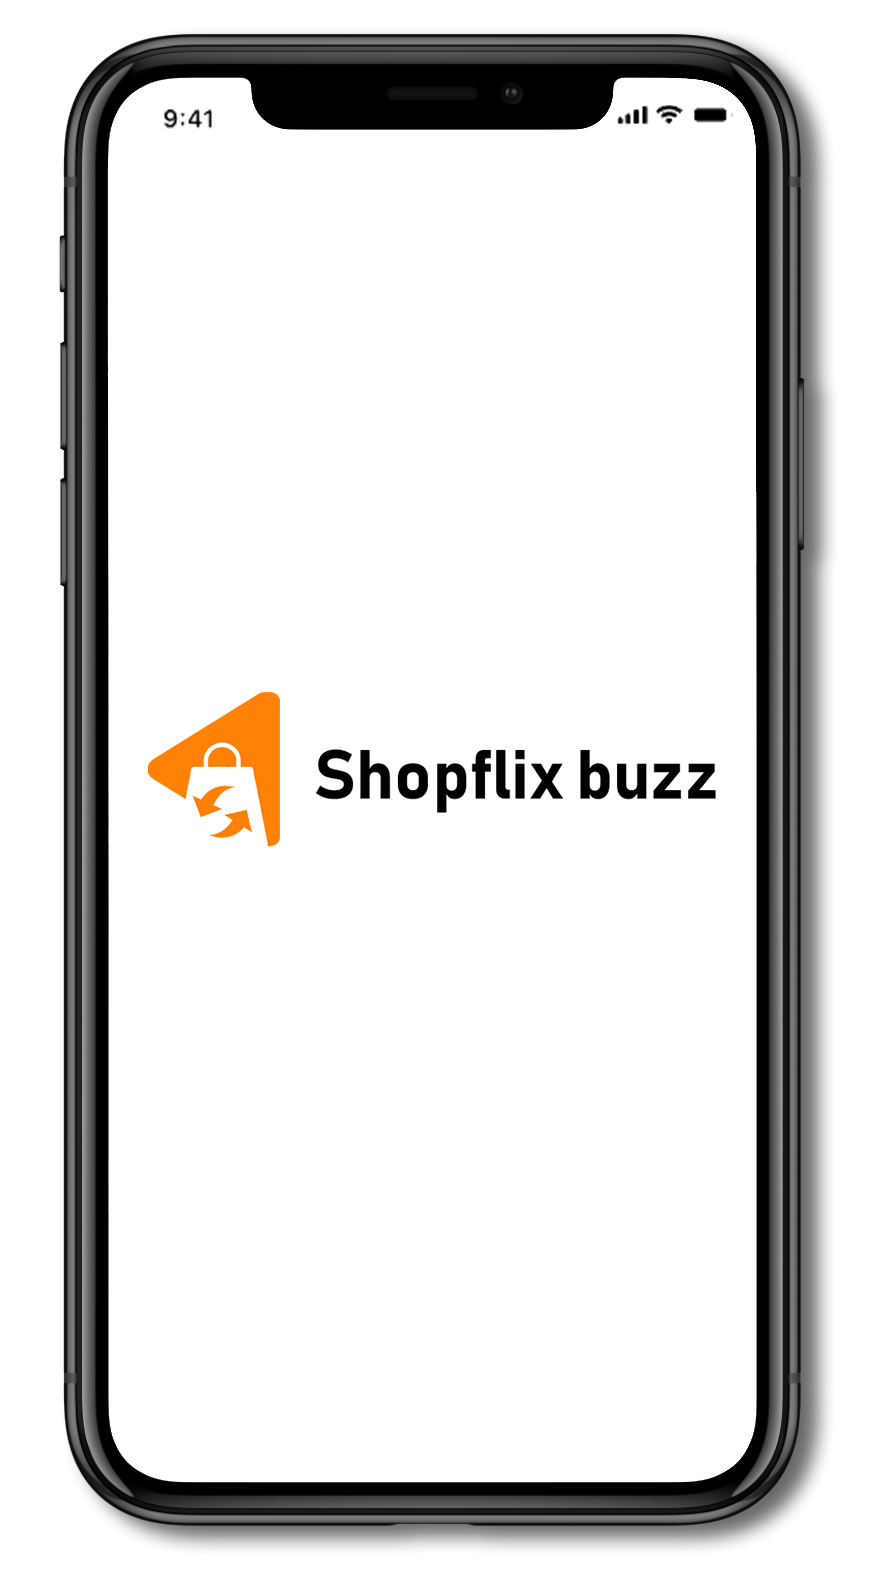 Shopflix buzz 2